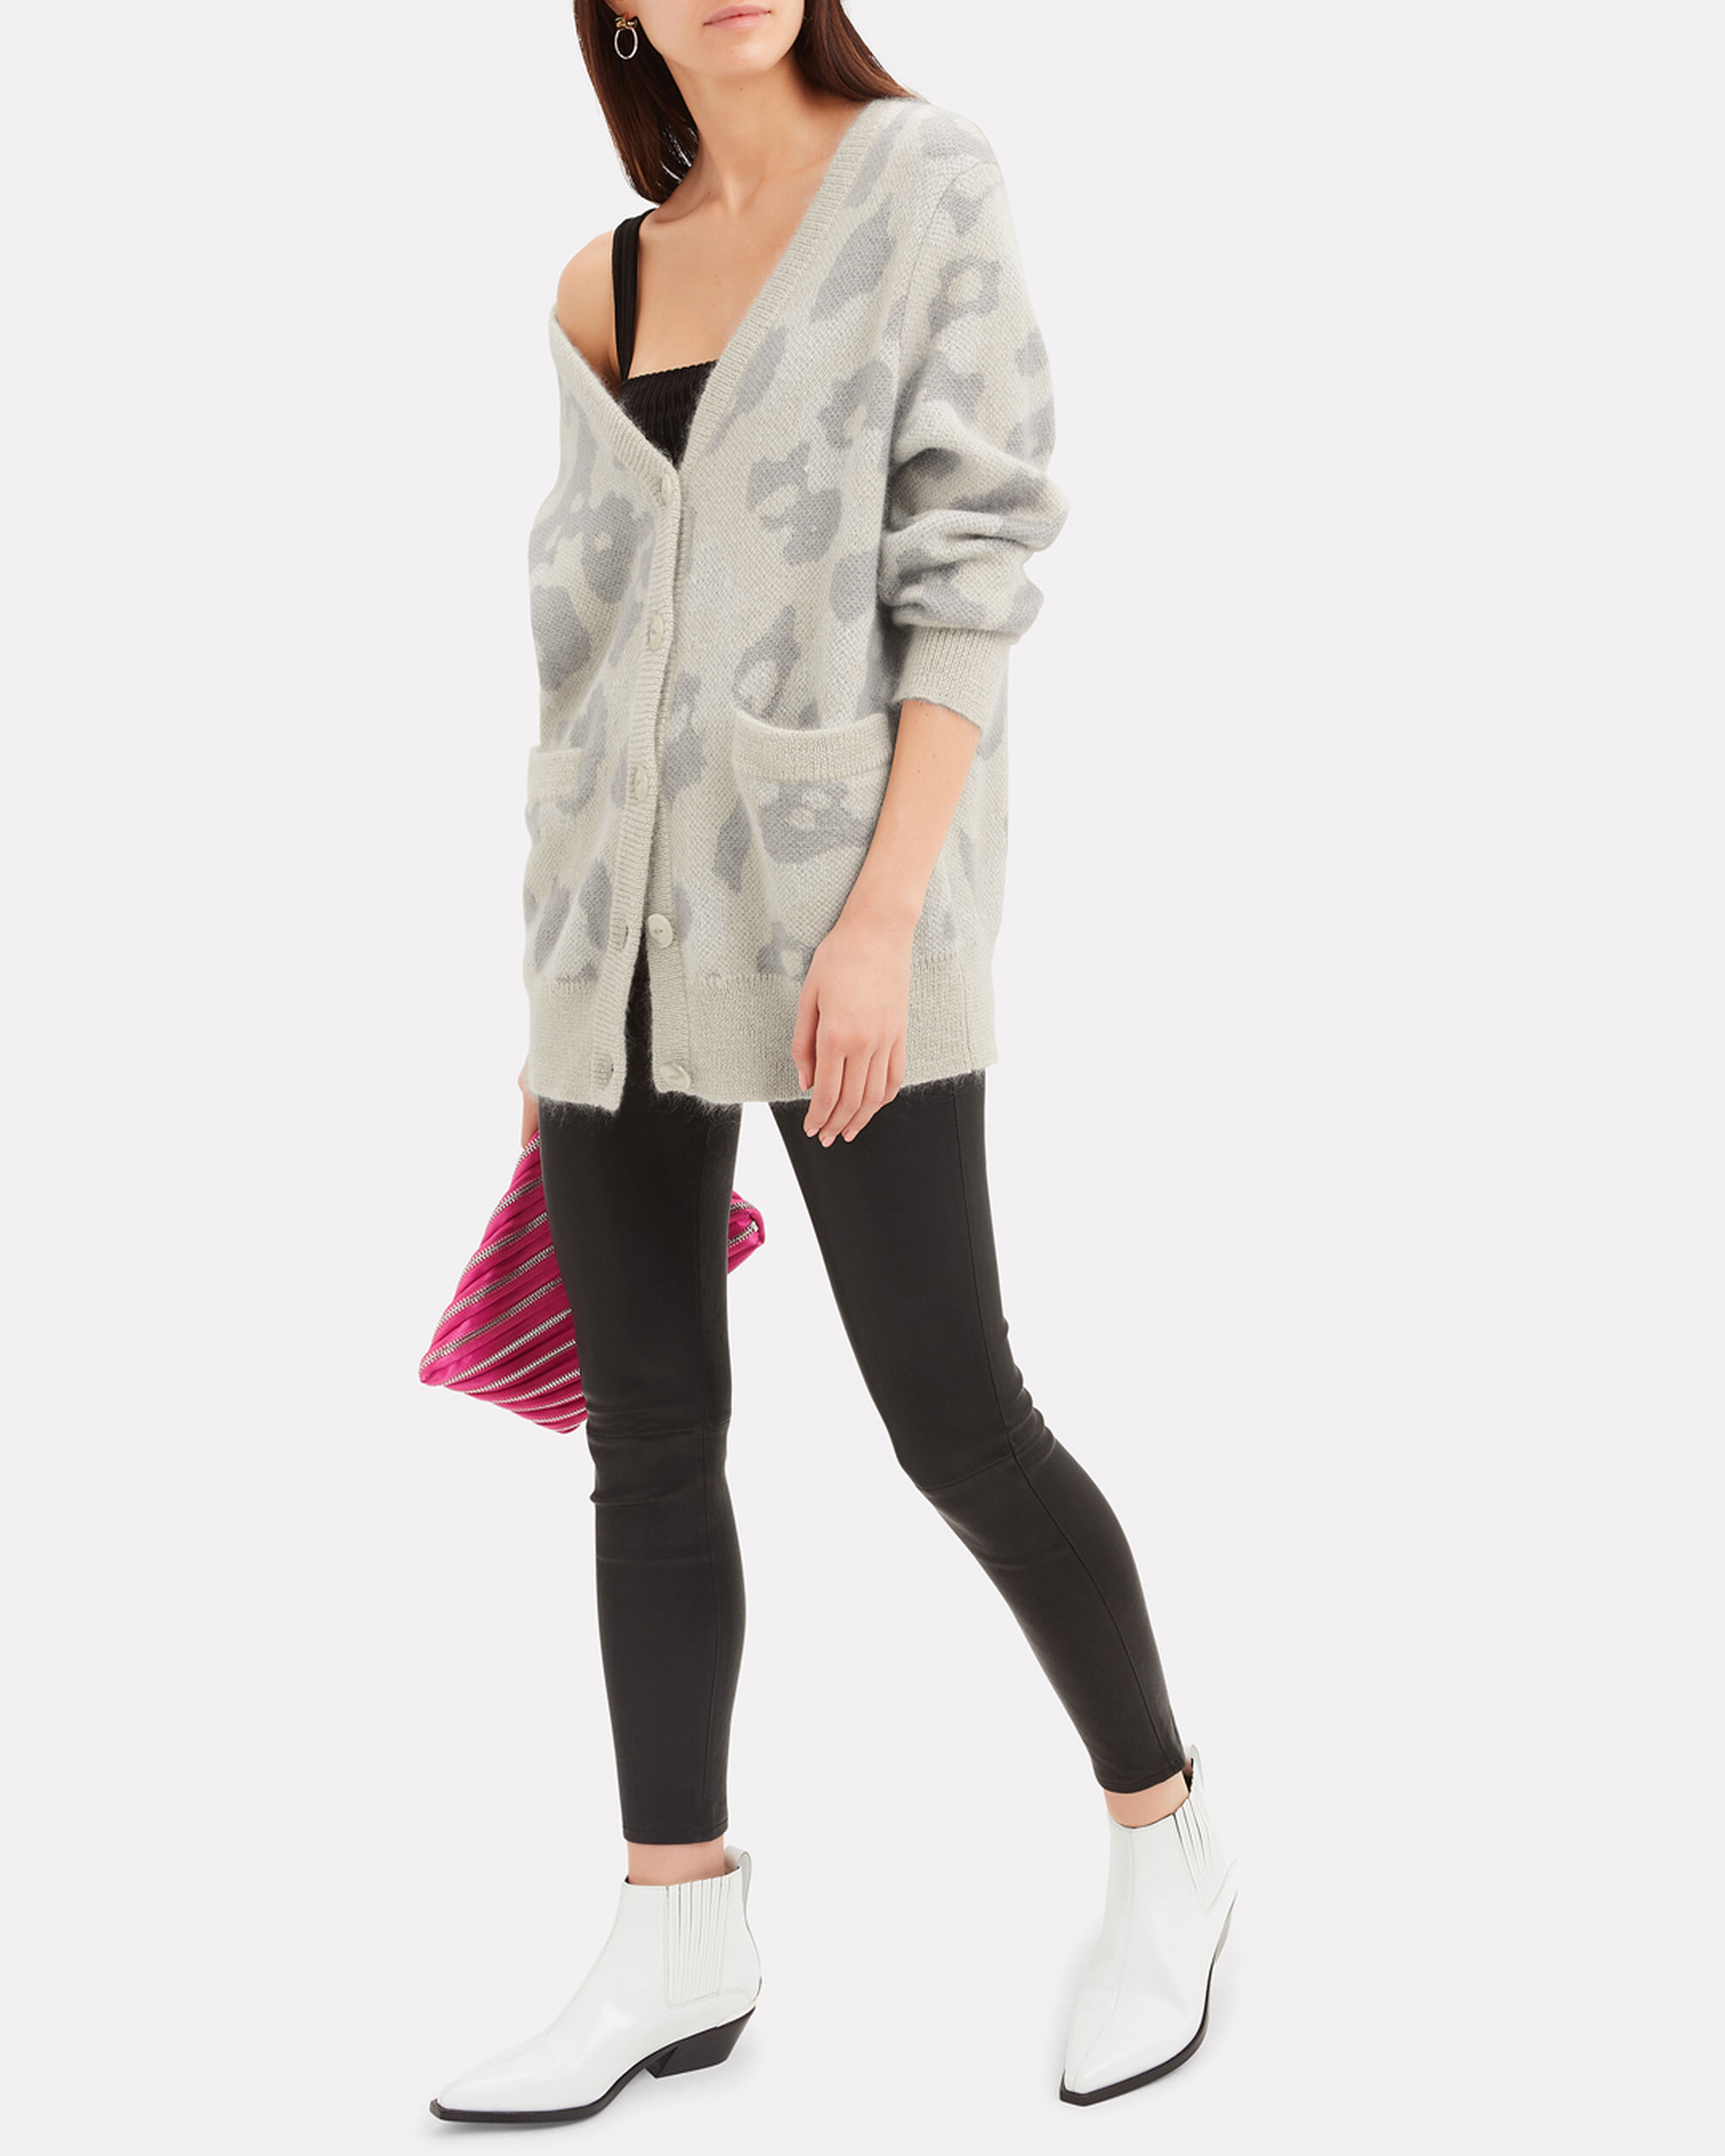 Leopard Print Cardigan, LIGHT GREY, hi-res